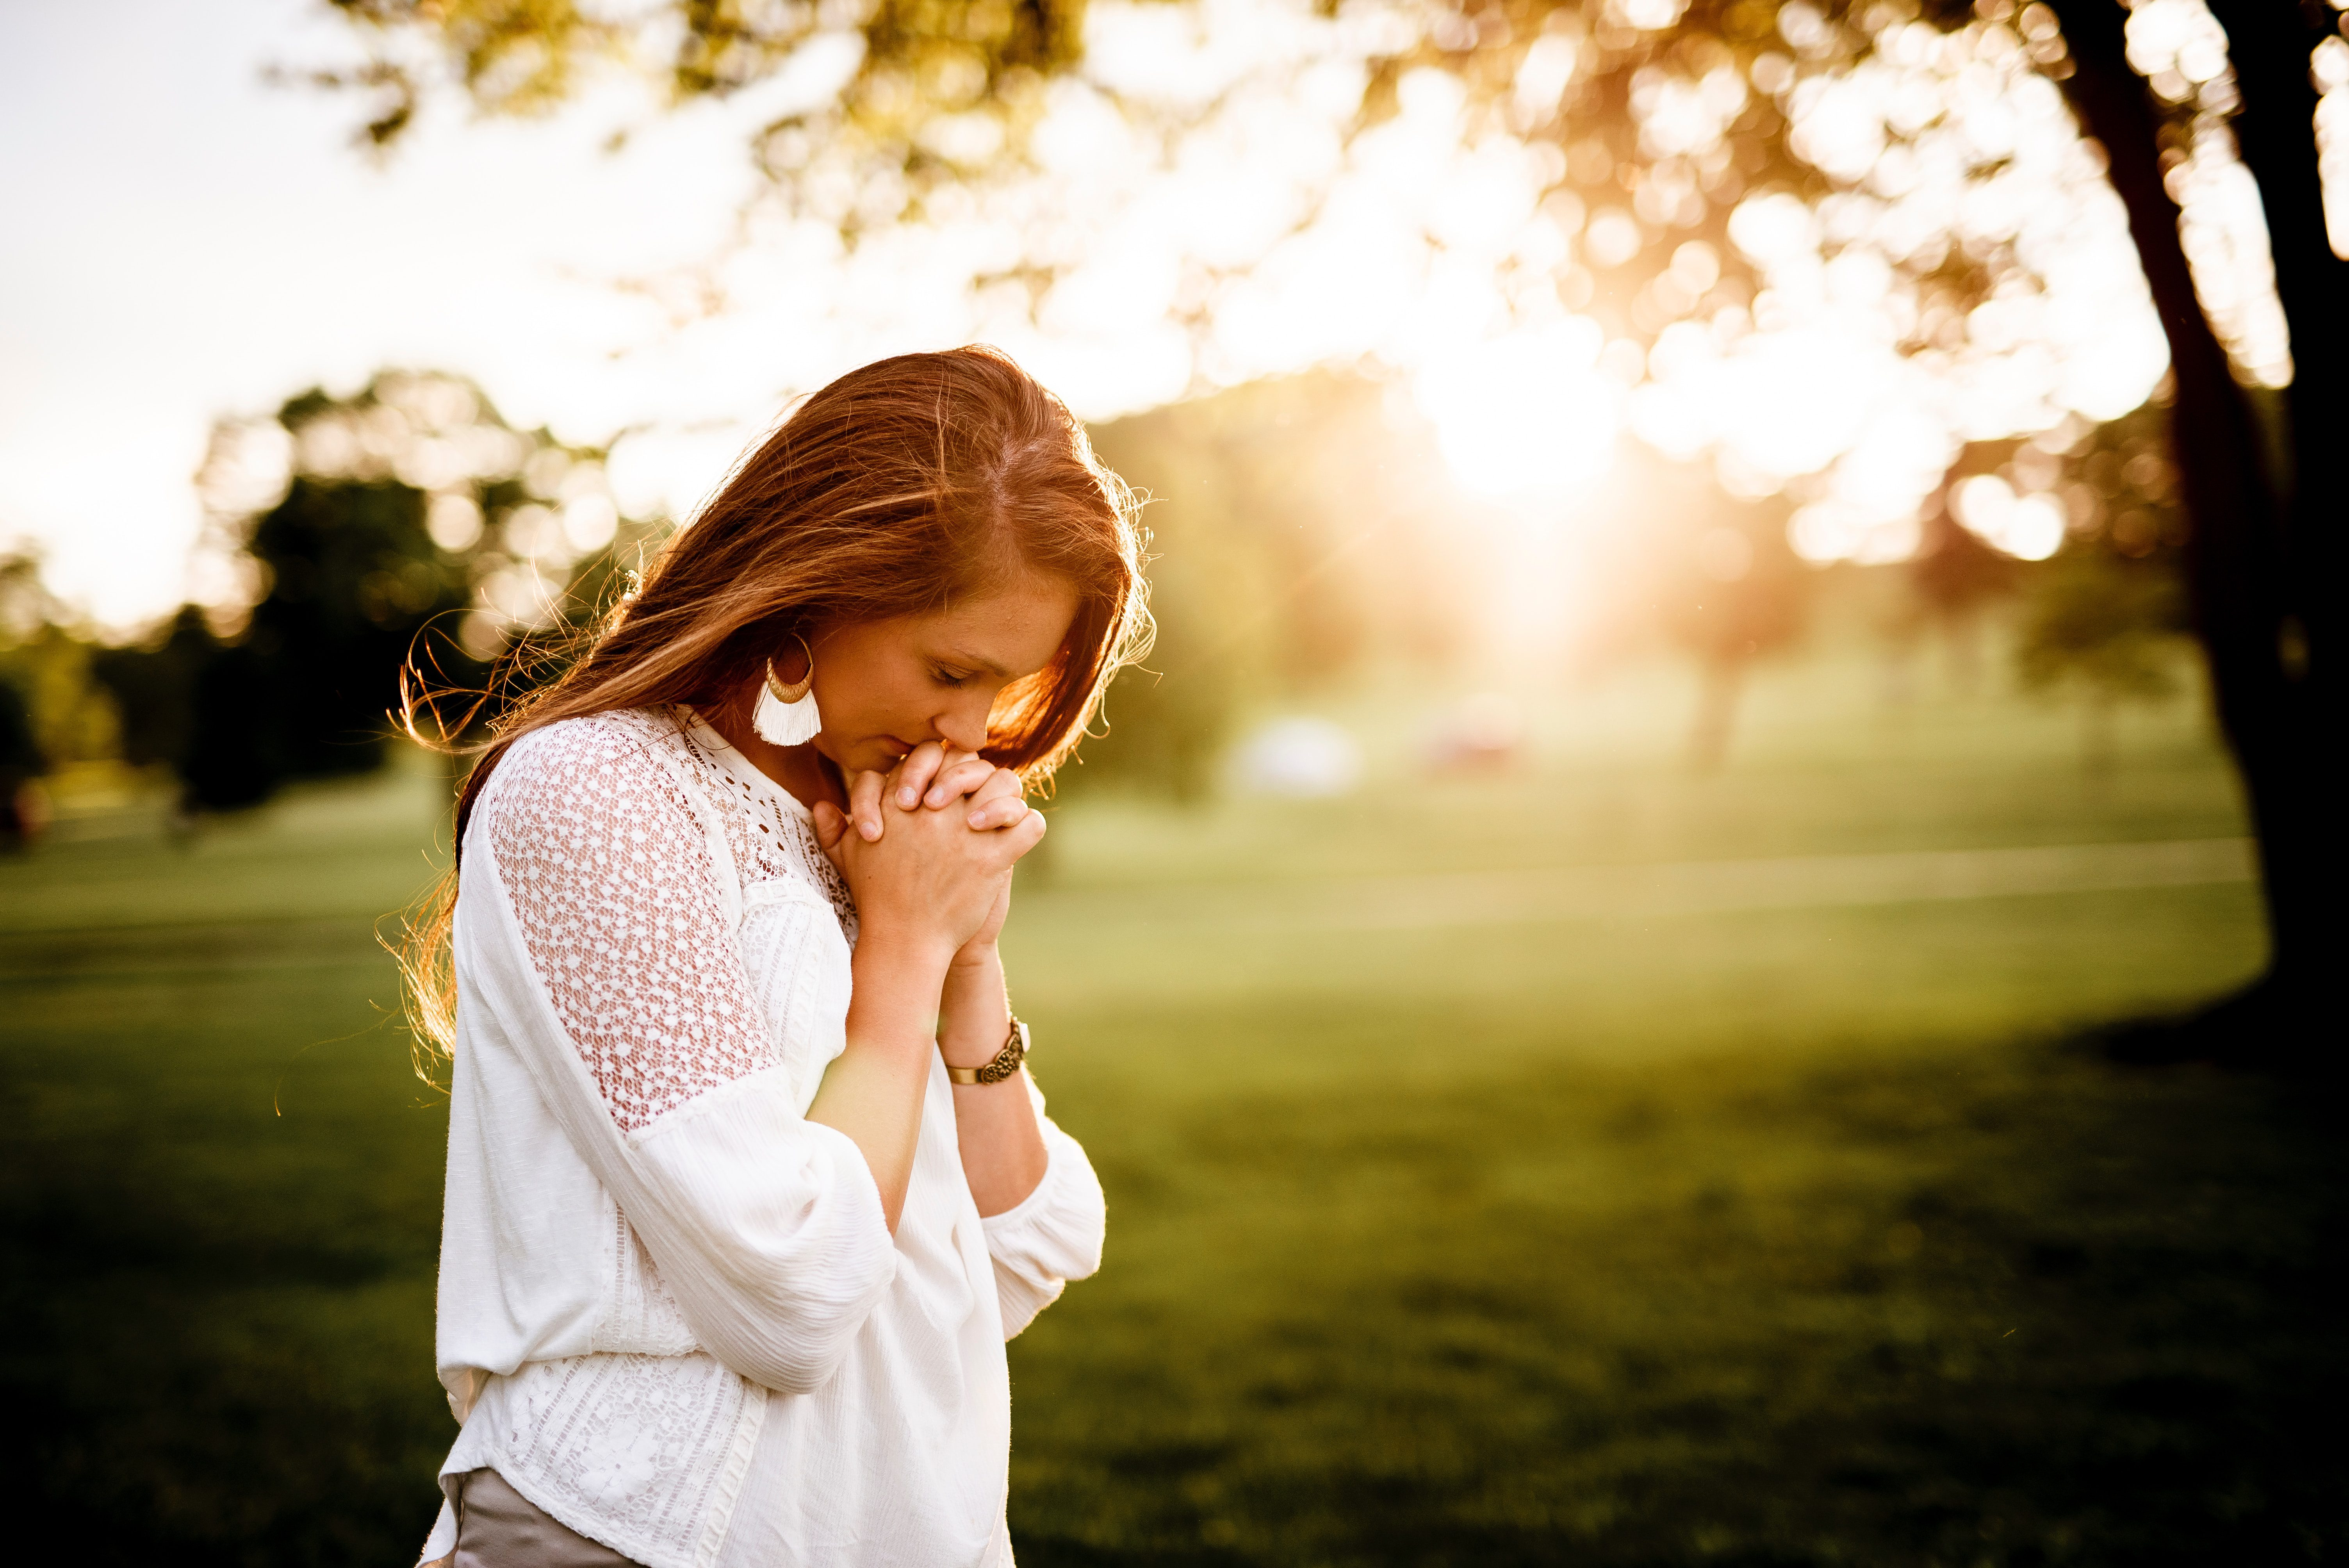 Stressed and anxious woman praying